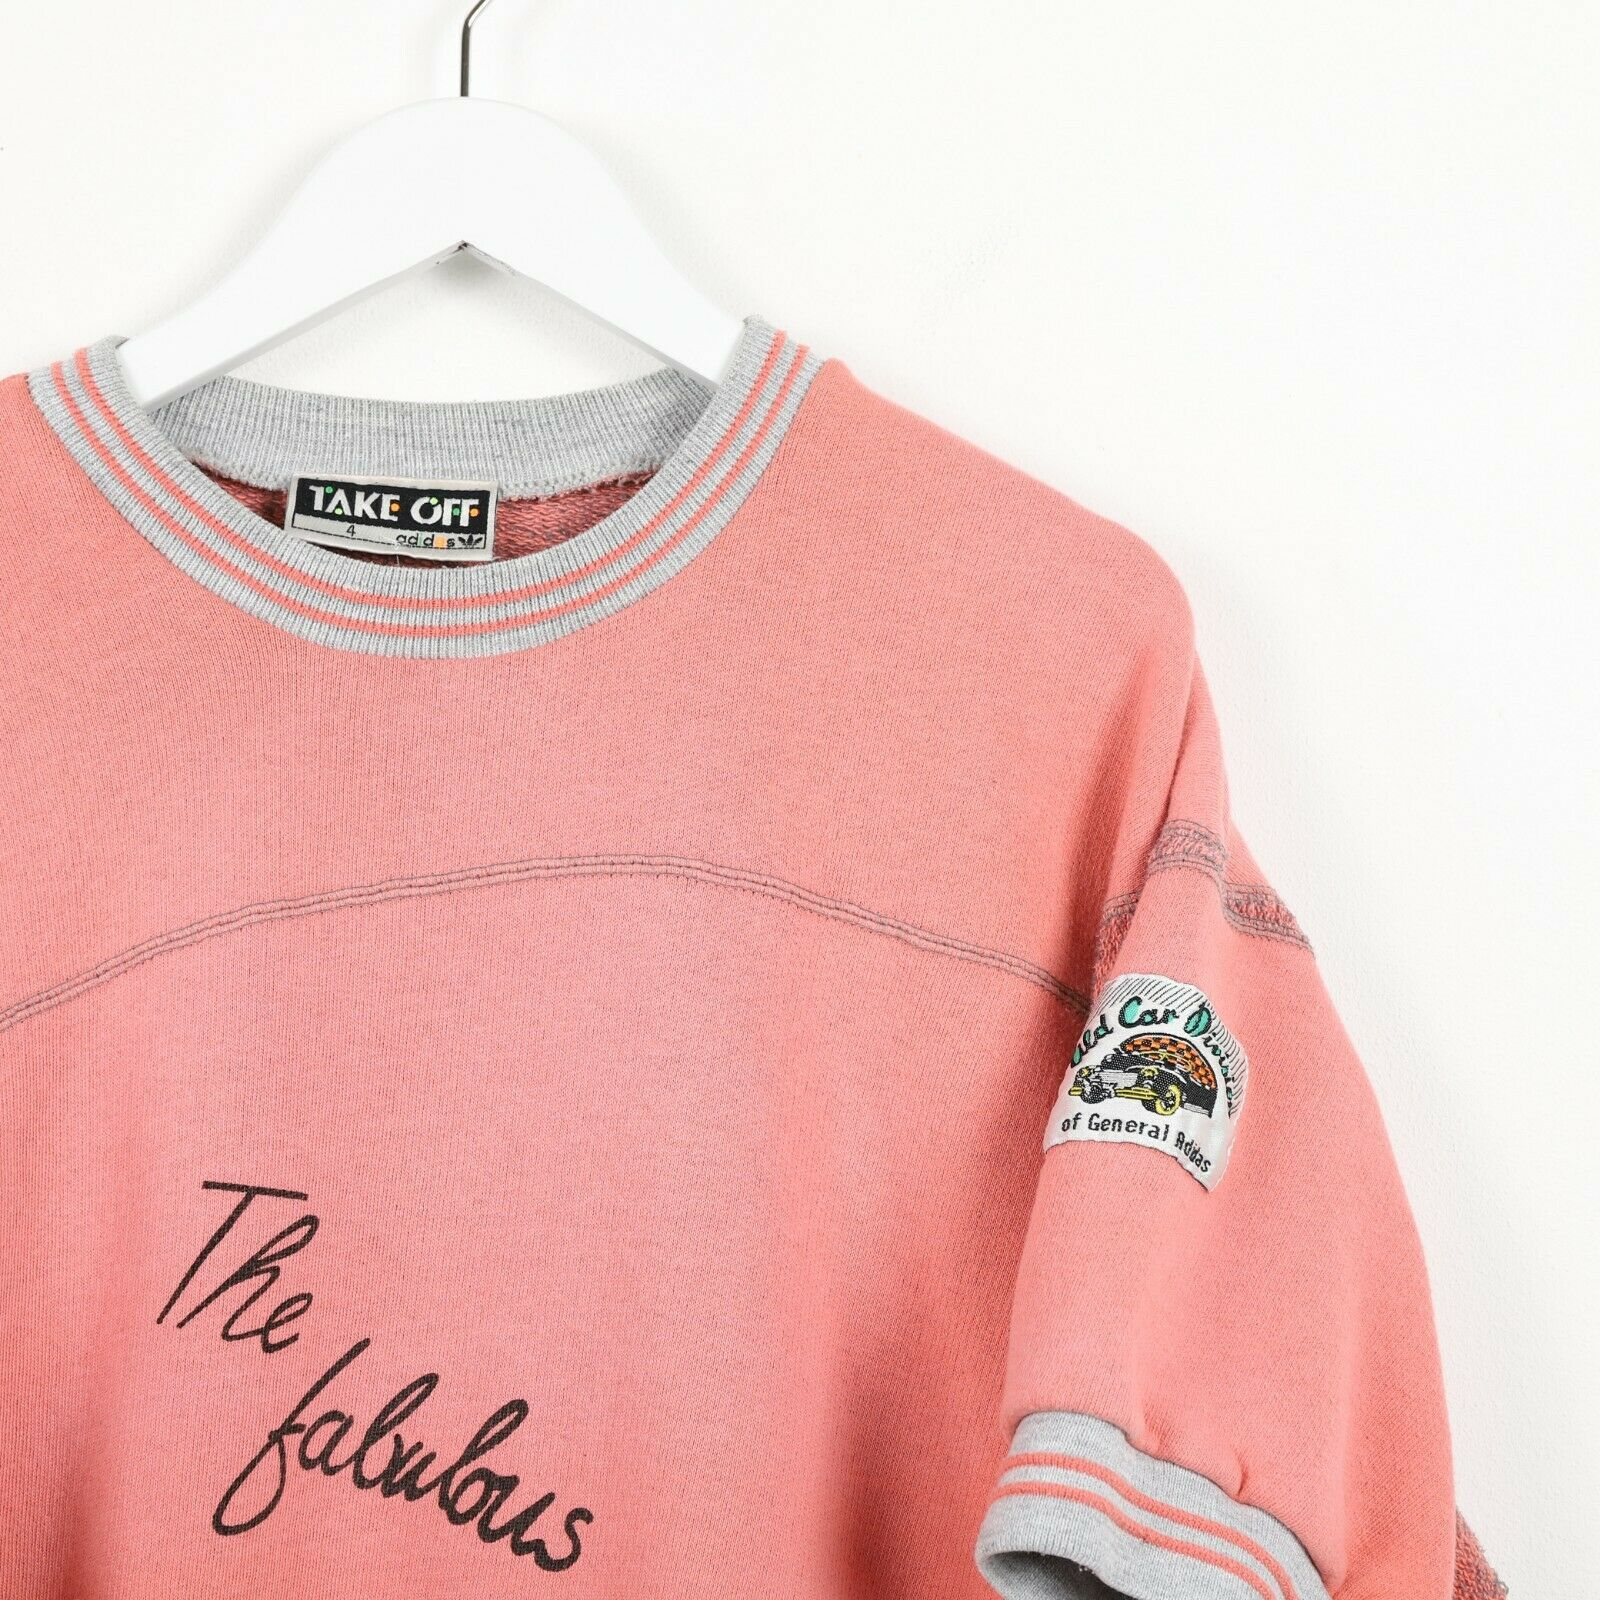 Vintage 80s ADIDAS TAKE OFF Short Sleeve Sweatshirt Jumper Pink Small S